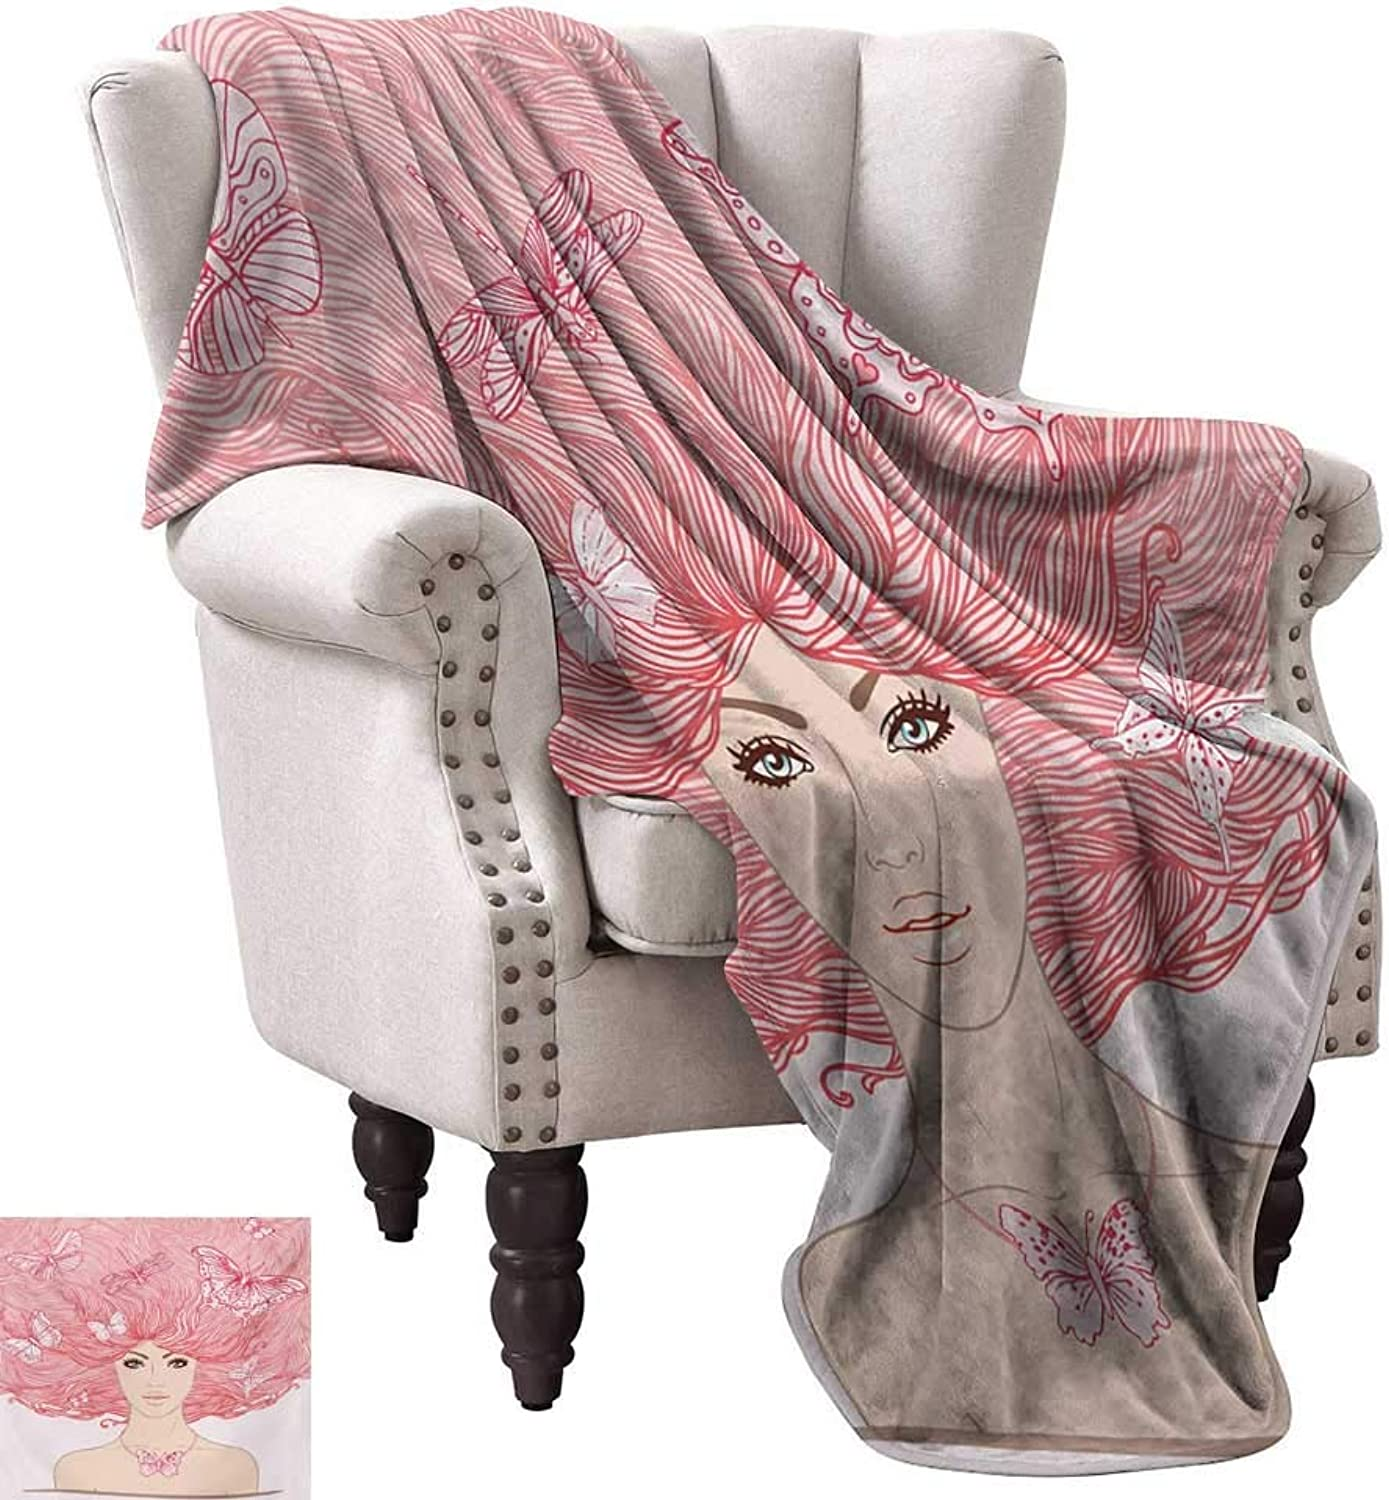 Super Soft Lightweight Blanket,Sketchy Hand Drawn Style Girl with Butterflies in Her Long Pink Hair Illustration 70 x60 ,Super Soft and Comfortable,Suitable for Sofas,Chairs,beds